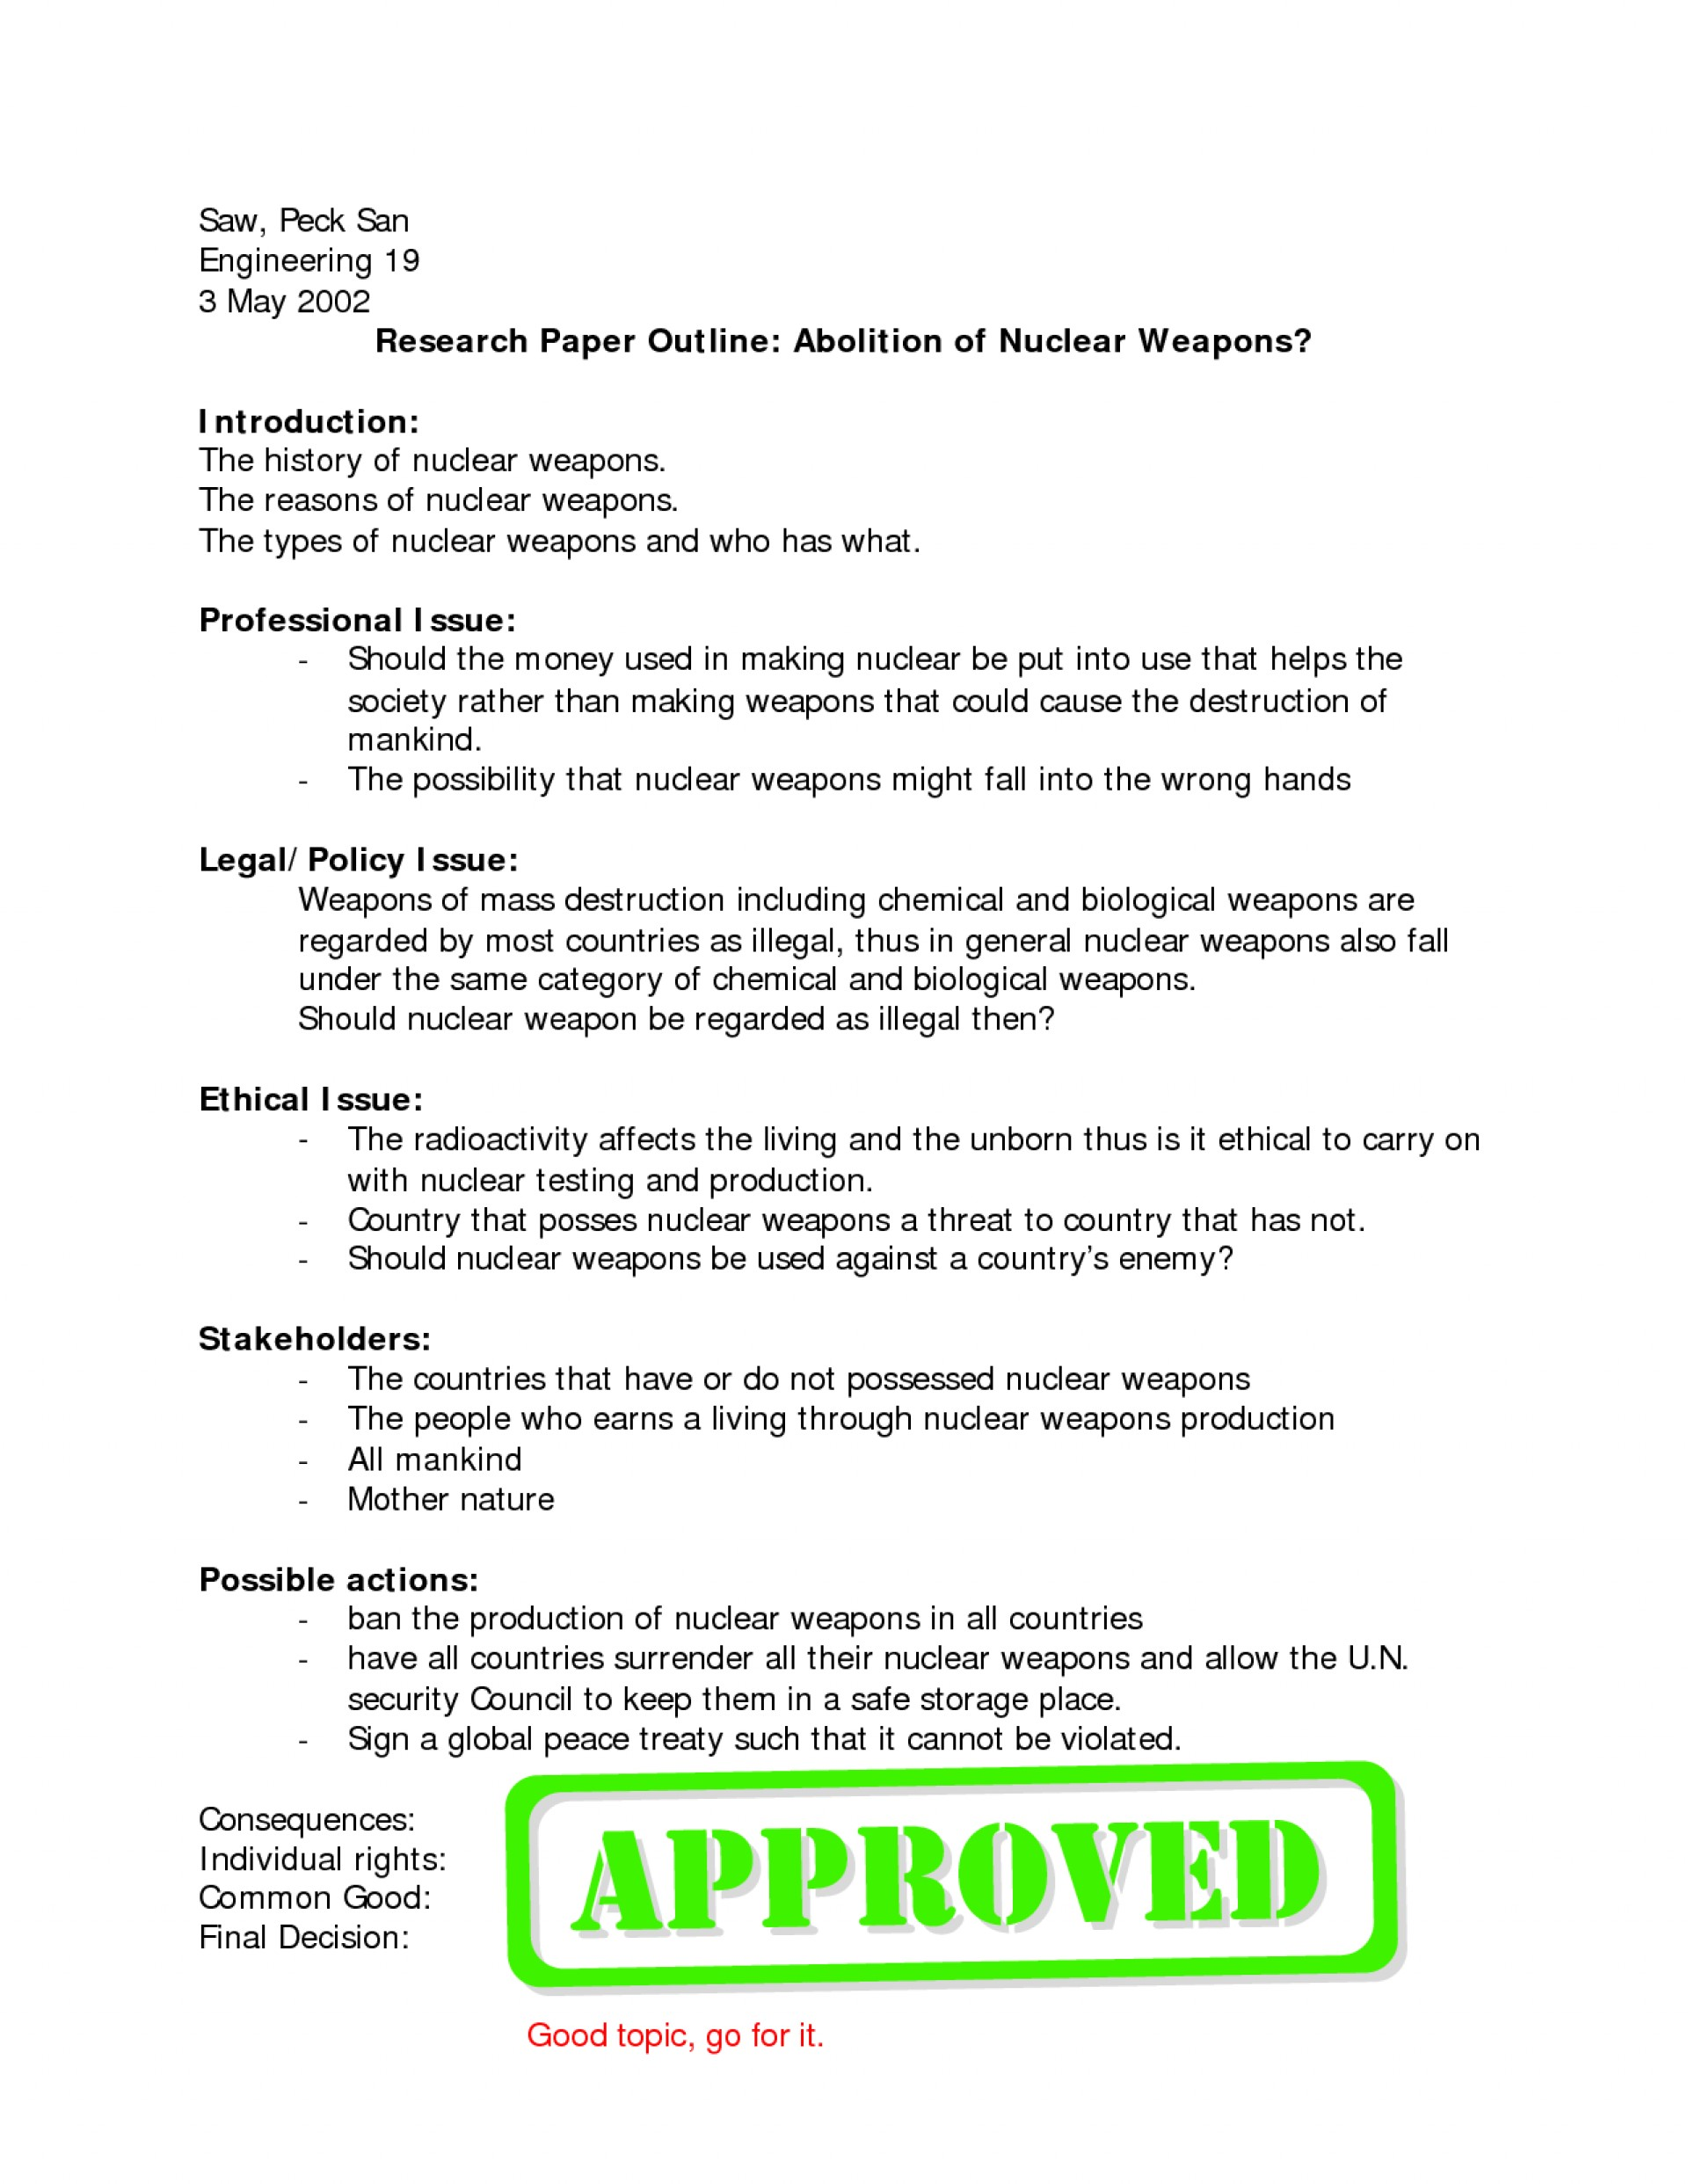 007 Online Writing Lab History Term Paper Outline Art Essay Example L 54077ce19516c3d9resizeu003d8061043 Research How To Write Rare A Biology Scientific Science 1920